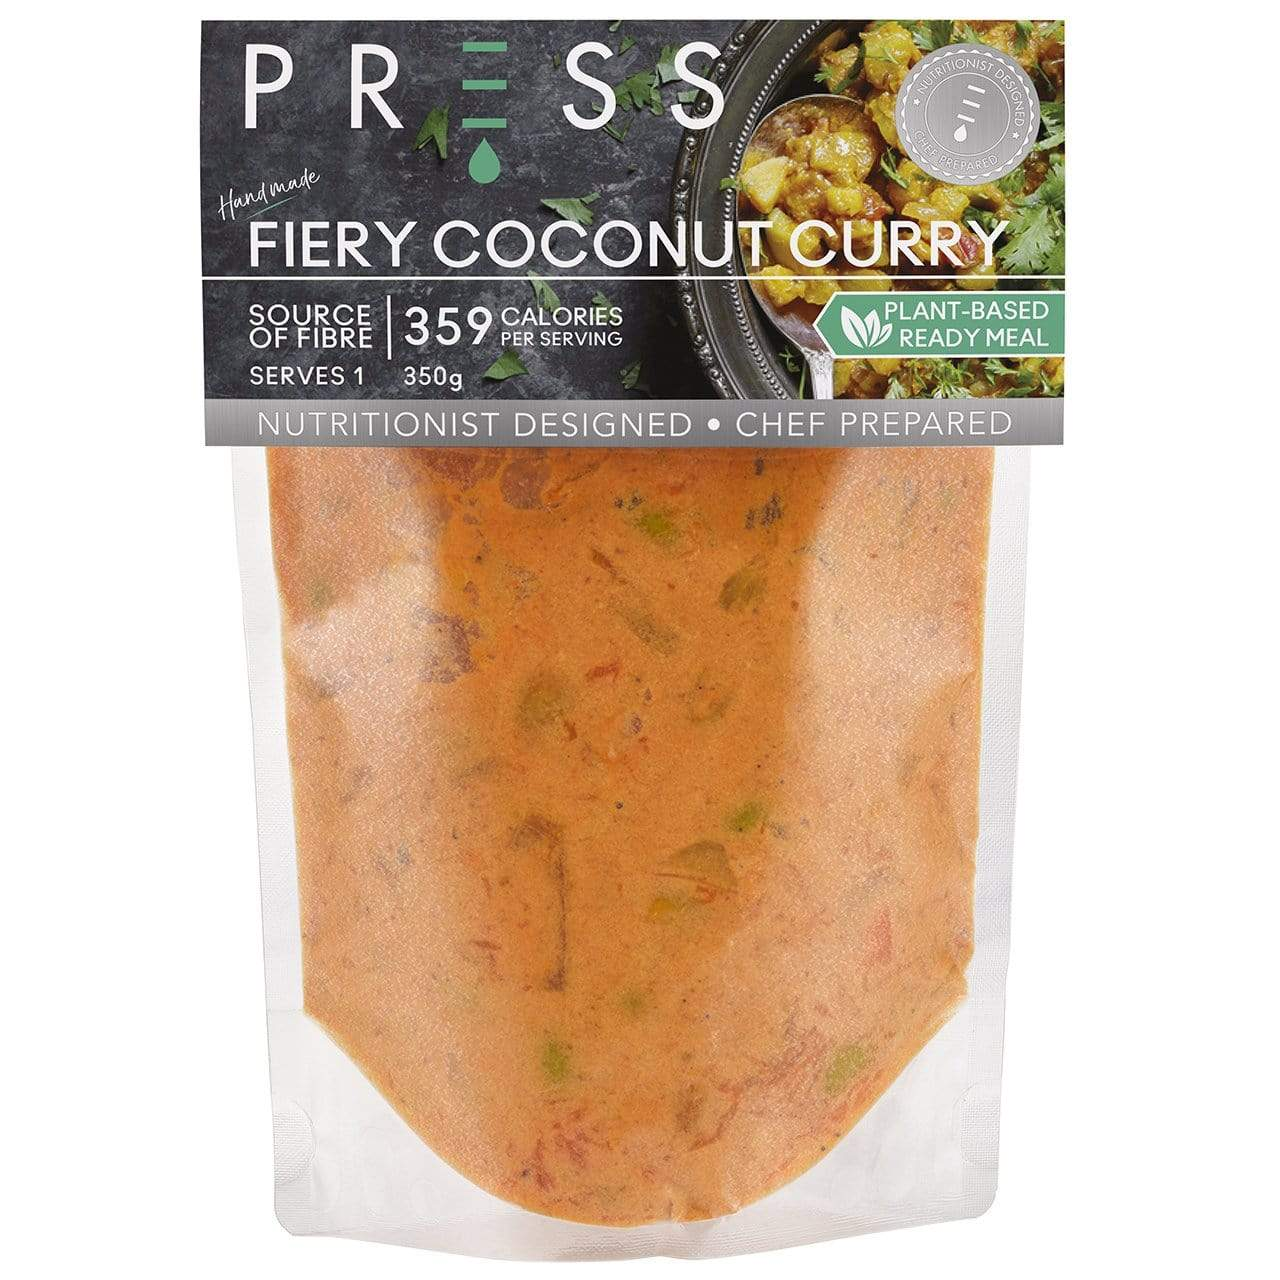 Fiery Coconut Curry - PRESS London